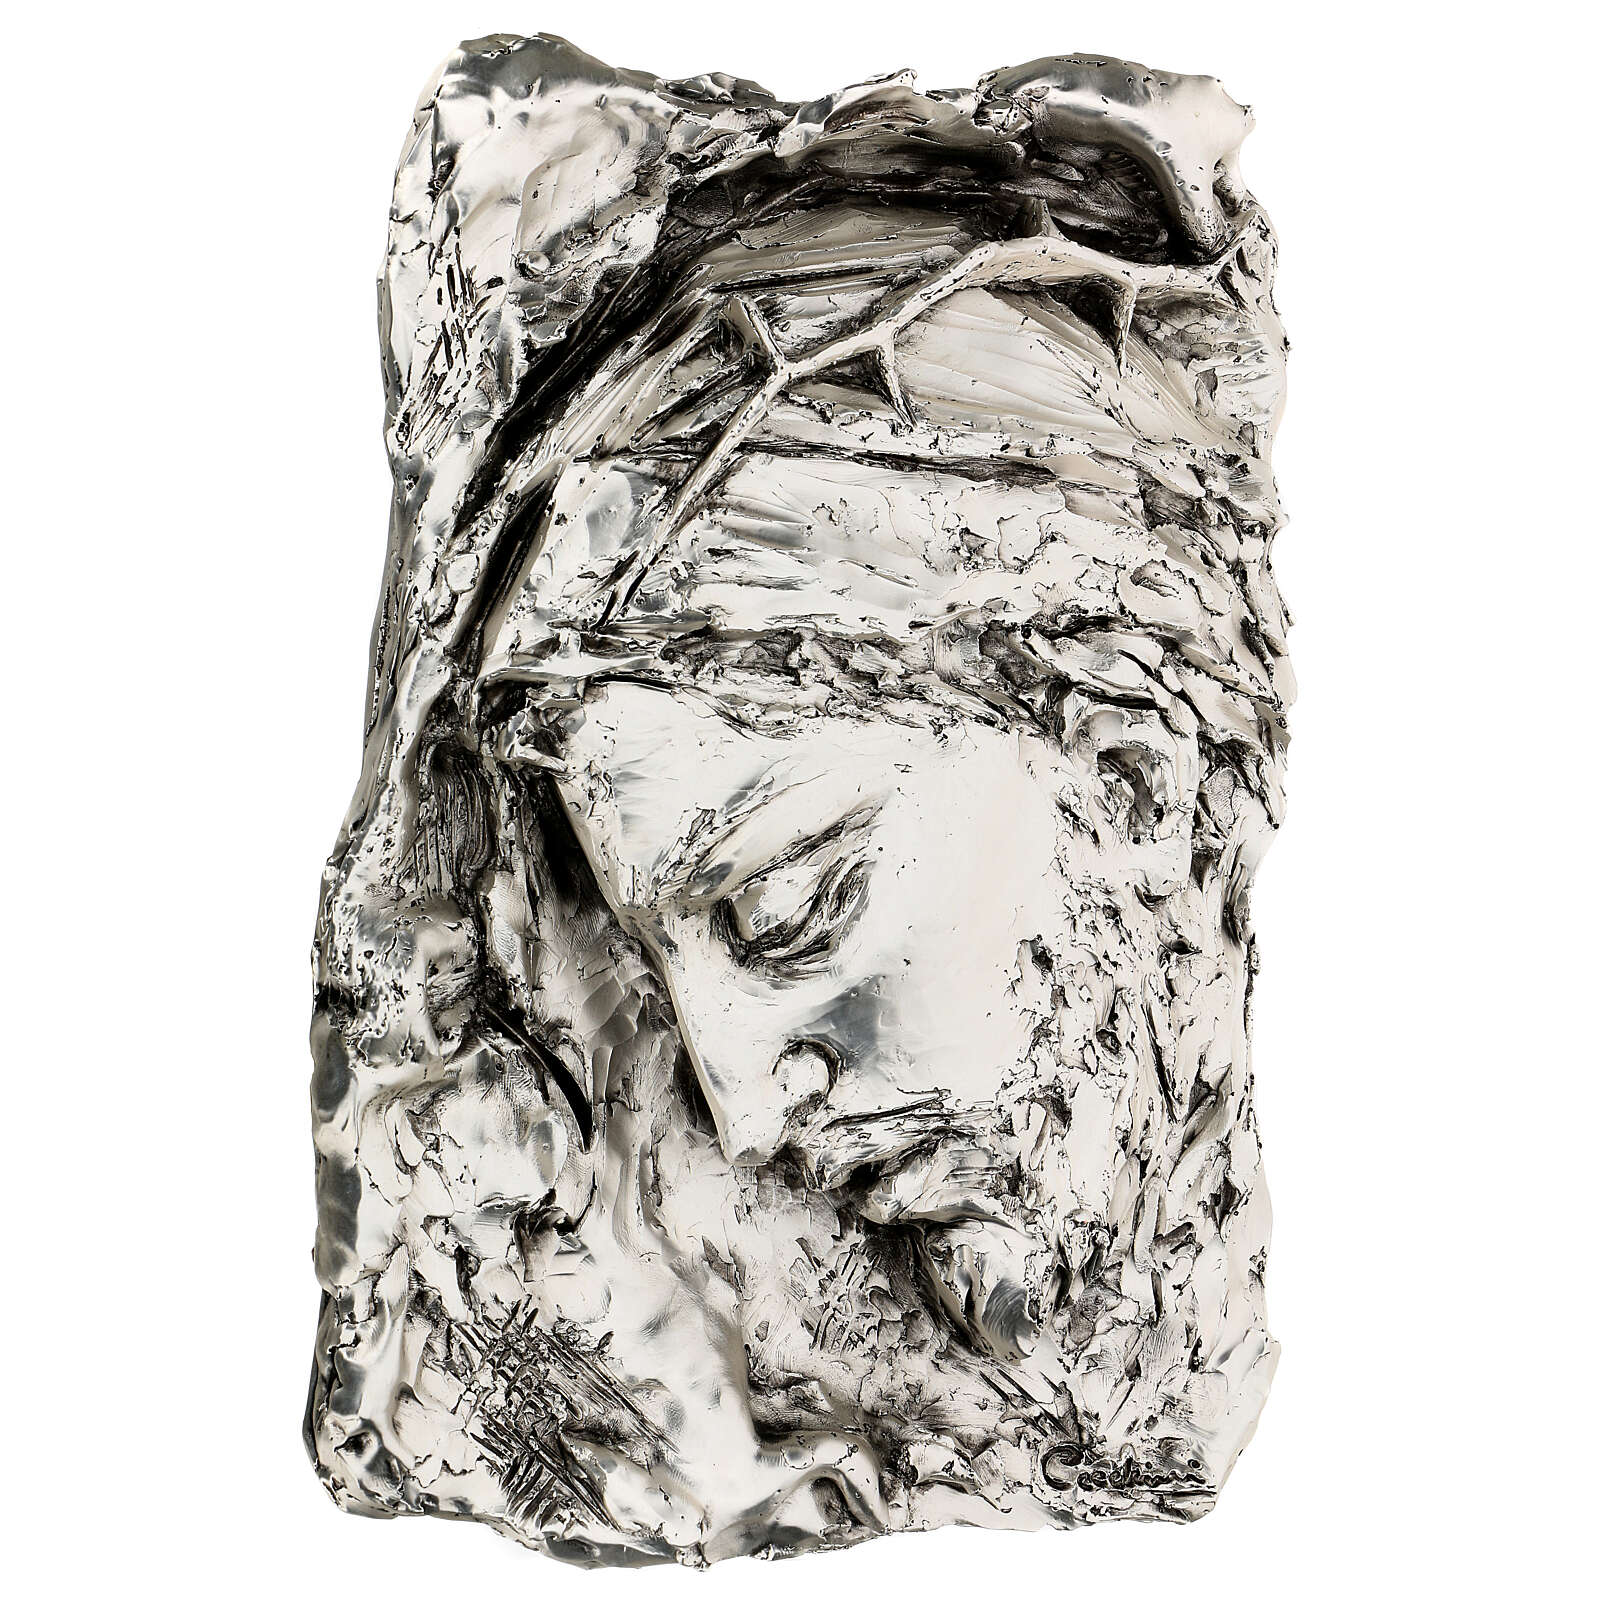 Silver Bas-relief, face of Christ with crown of thorns 4